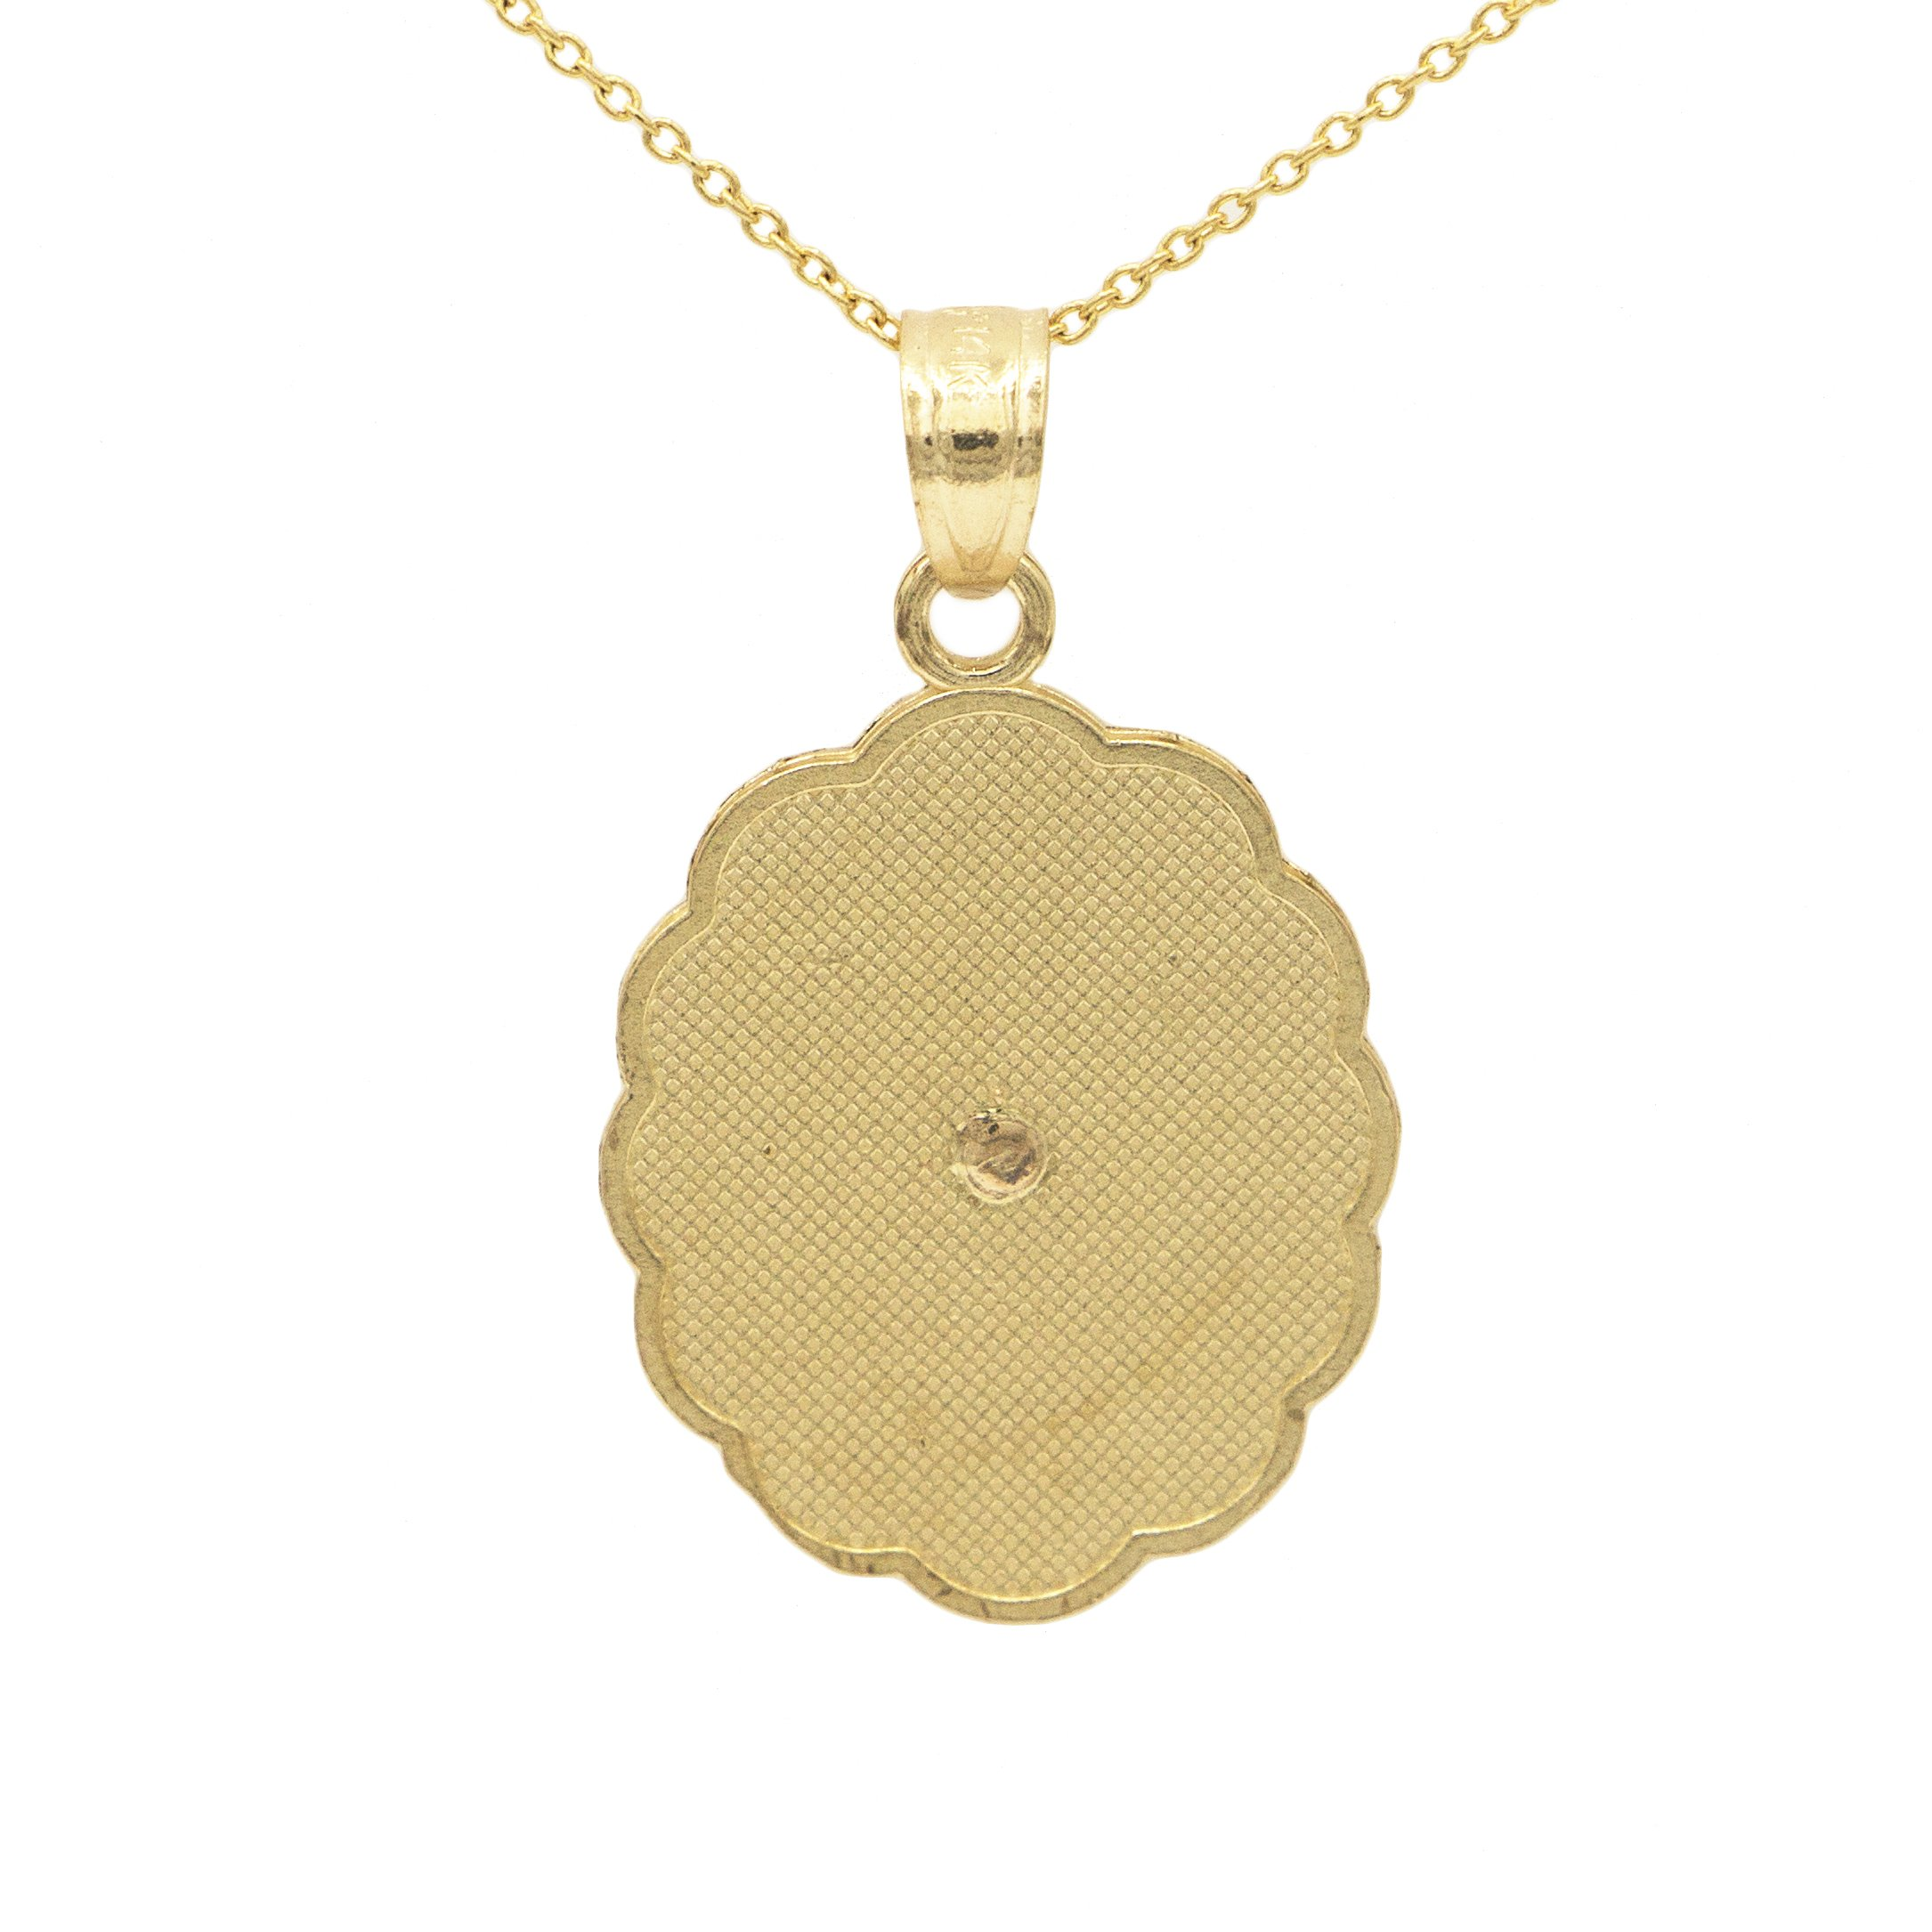 jewelers eli virgin image pendant yellow products gold mary adams